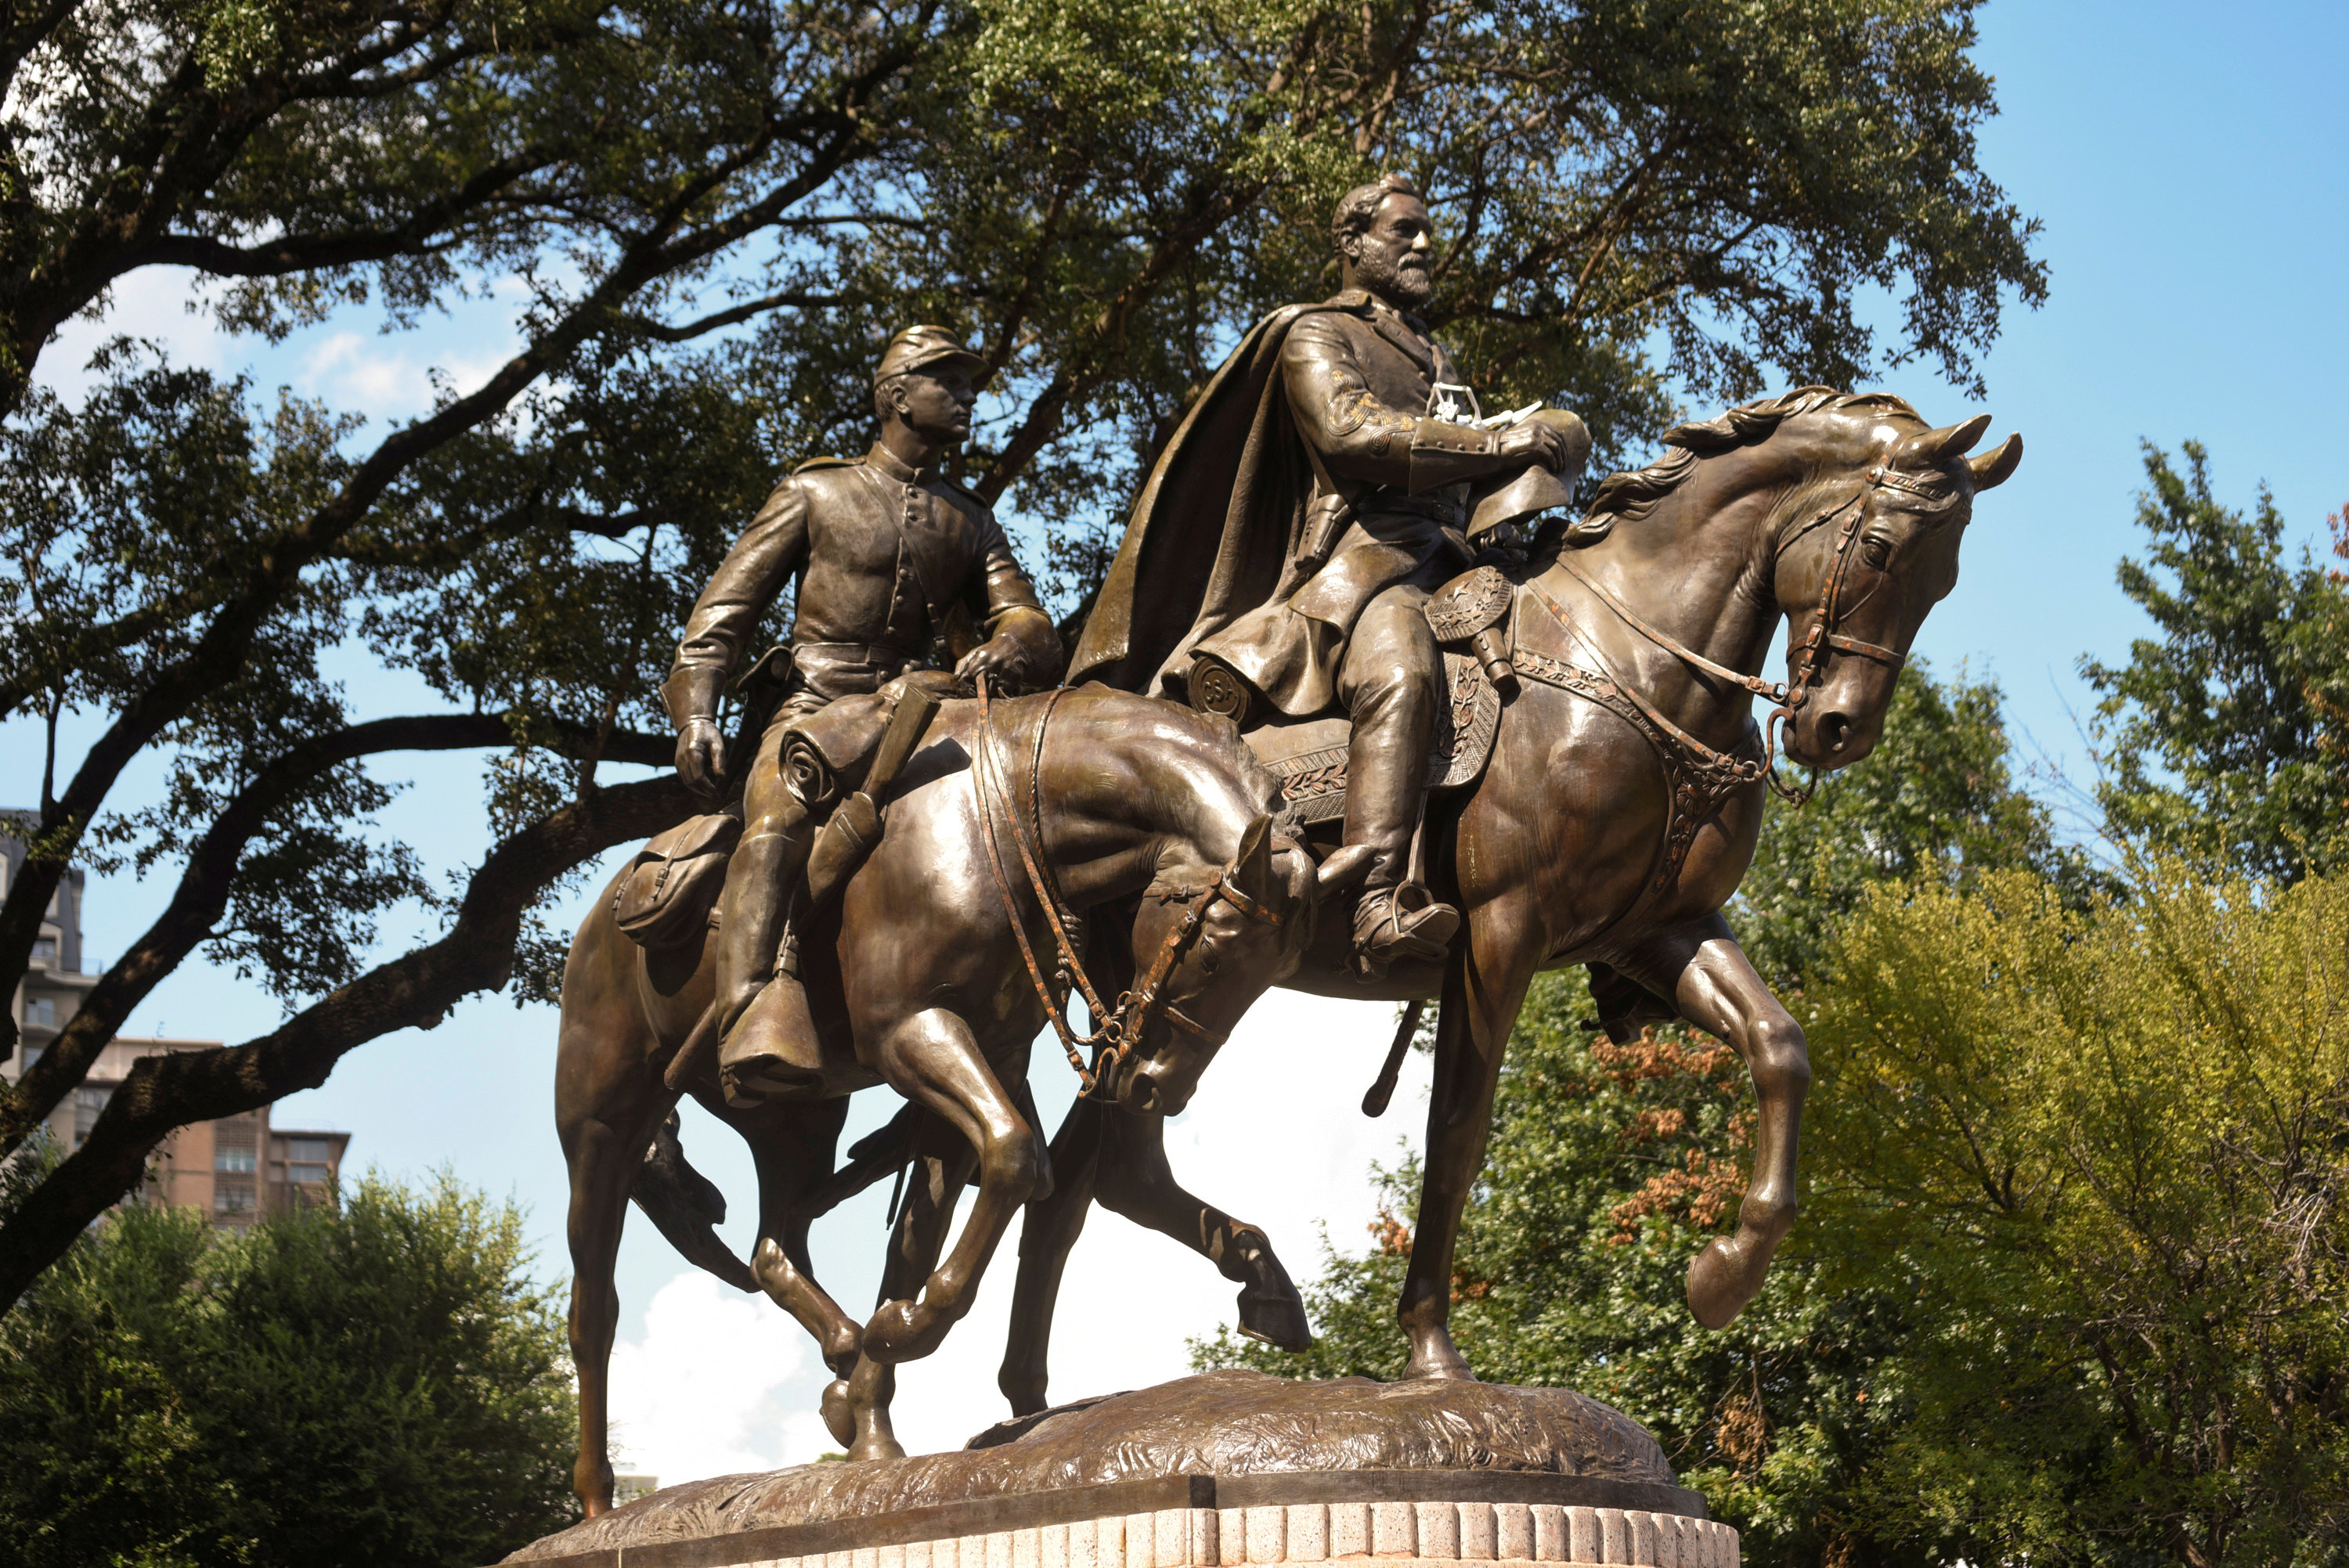 FILE PHOTO: The statue of Robert E. Lee is seen in Dallas, Texas, U.S. August 19, 2017. REUTERS/Rex Curry/File Photo